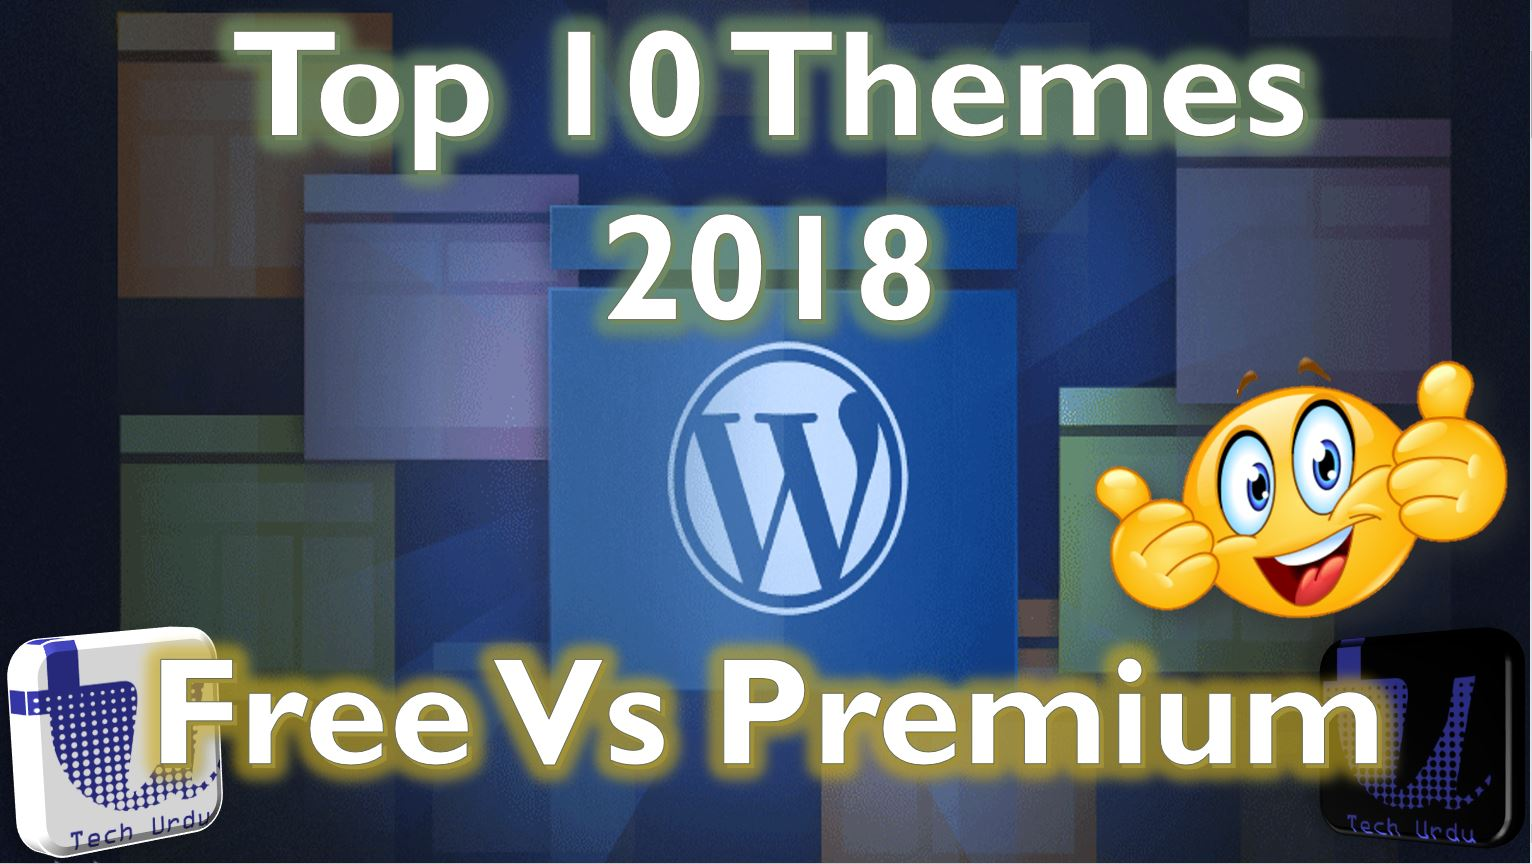 Top 10 WordPress Themes Free Vs Premium Themes 2018 - Tech Urdu